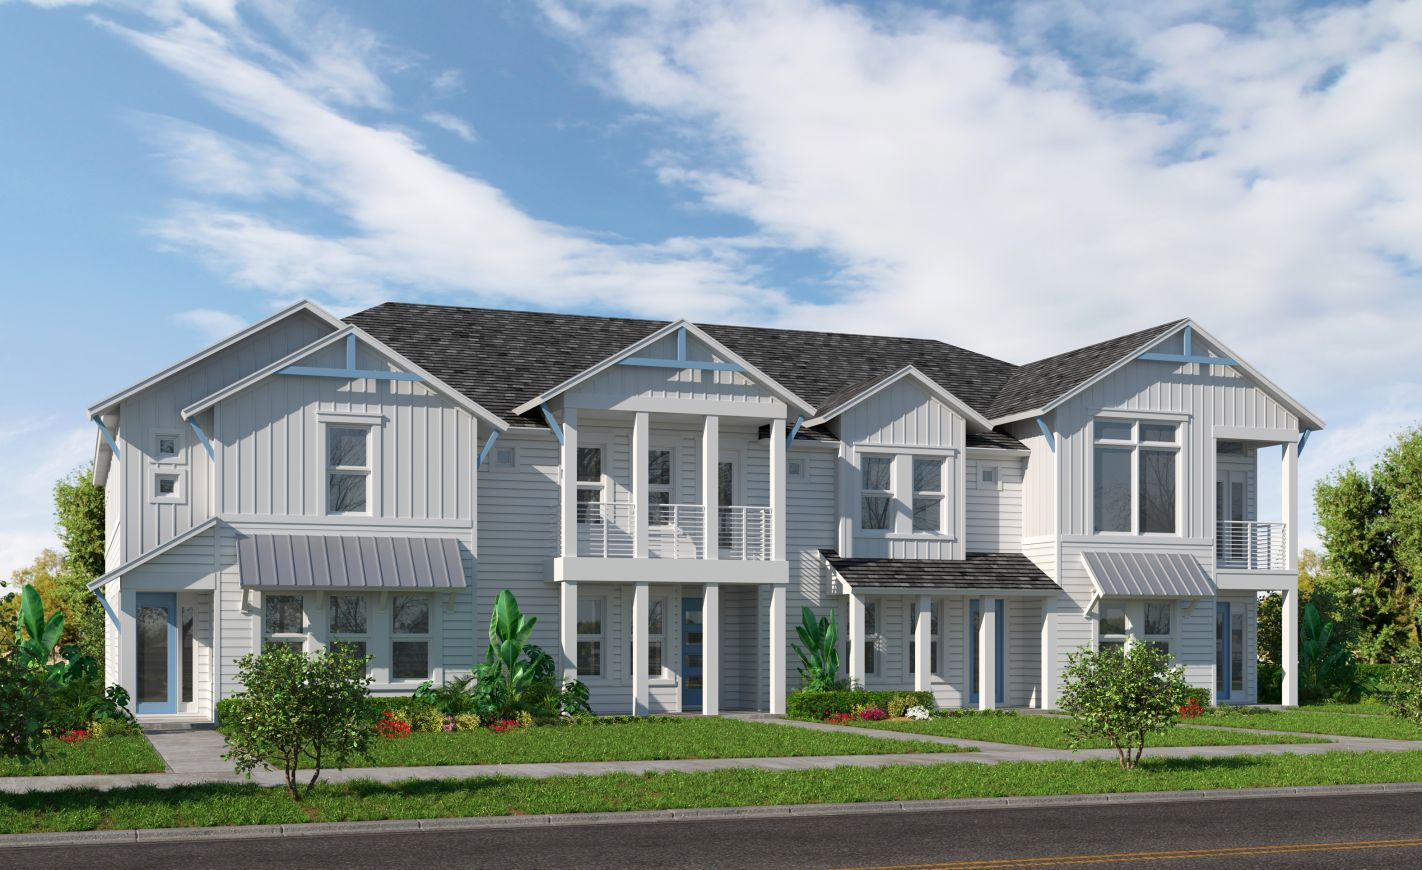 Nocatee Homes for Sale - The Flagler at Nocatee